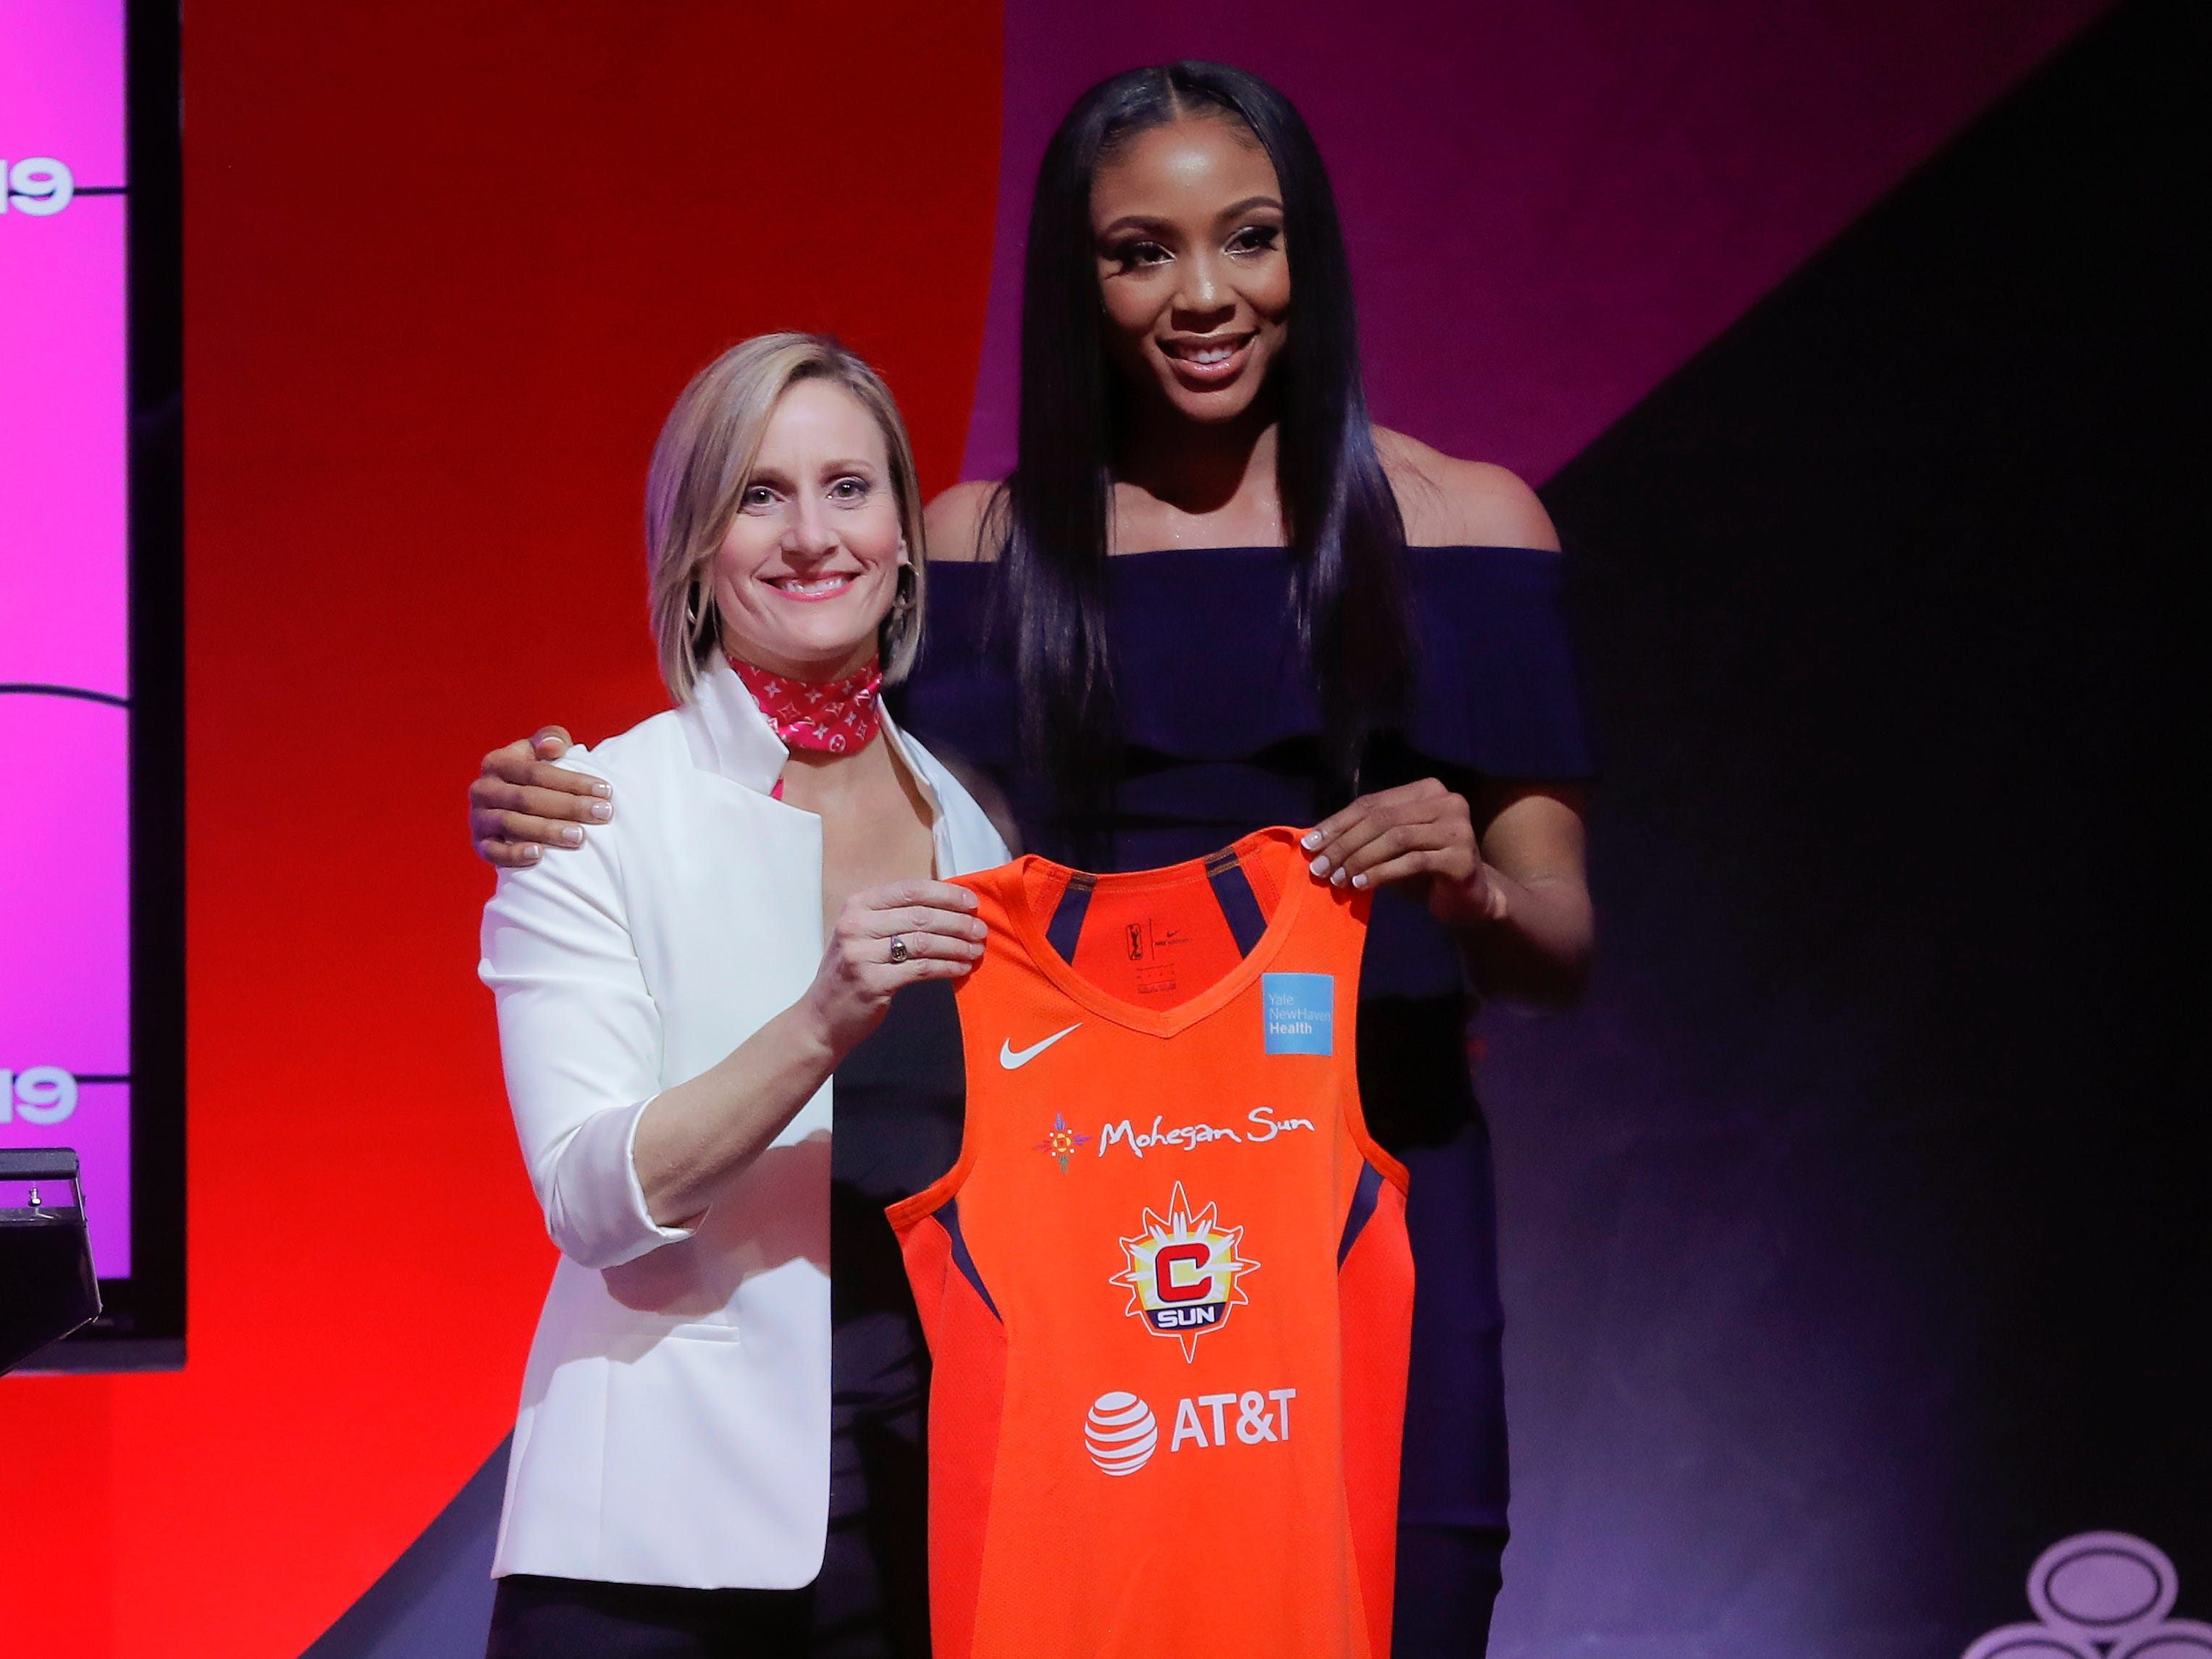 Kristine Anigwe poses for a photo with WNBA COO Christy Hedgpeth after being selected by the Connecticut Sun as the ninth overall pick in the WNBA draft.